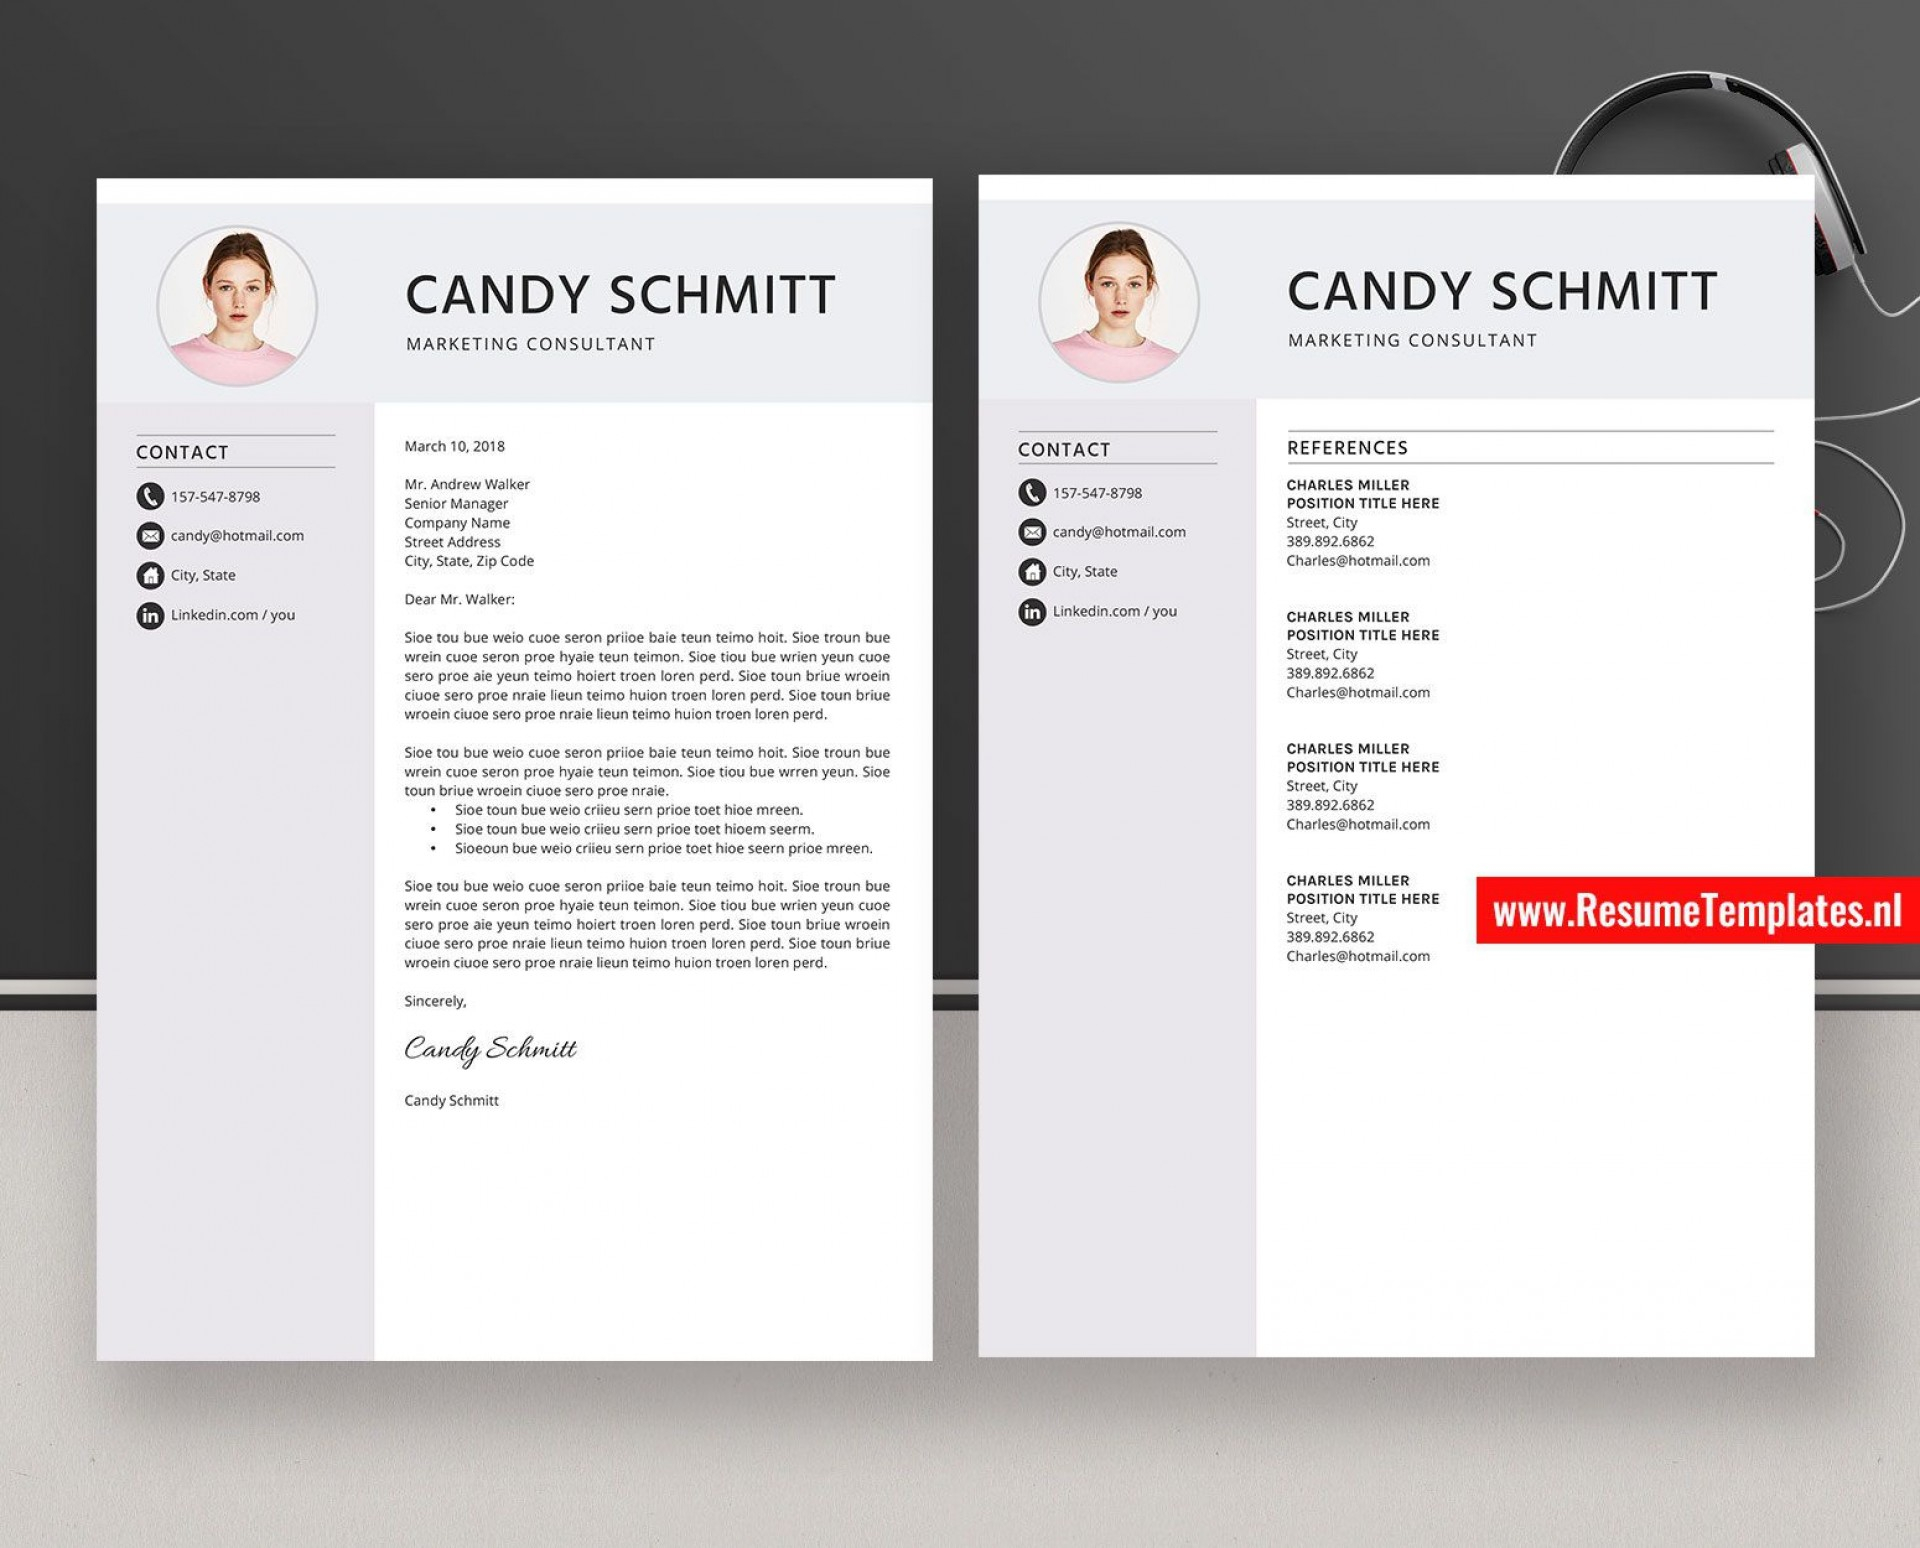 008 Awful Window Resume Cover Letter Template High Def  Templates1920